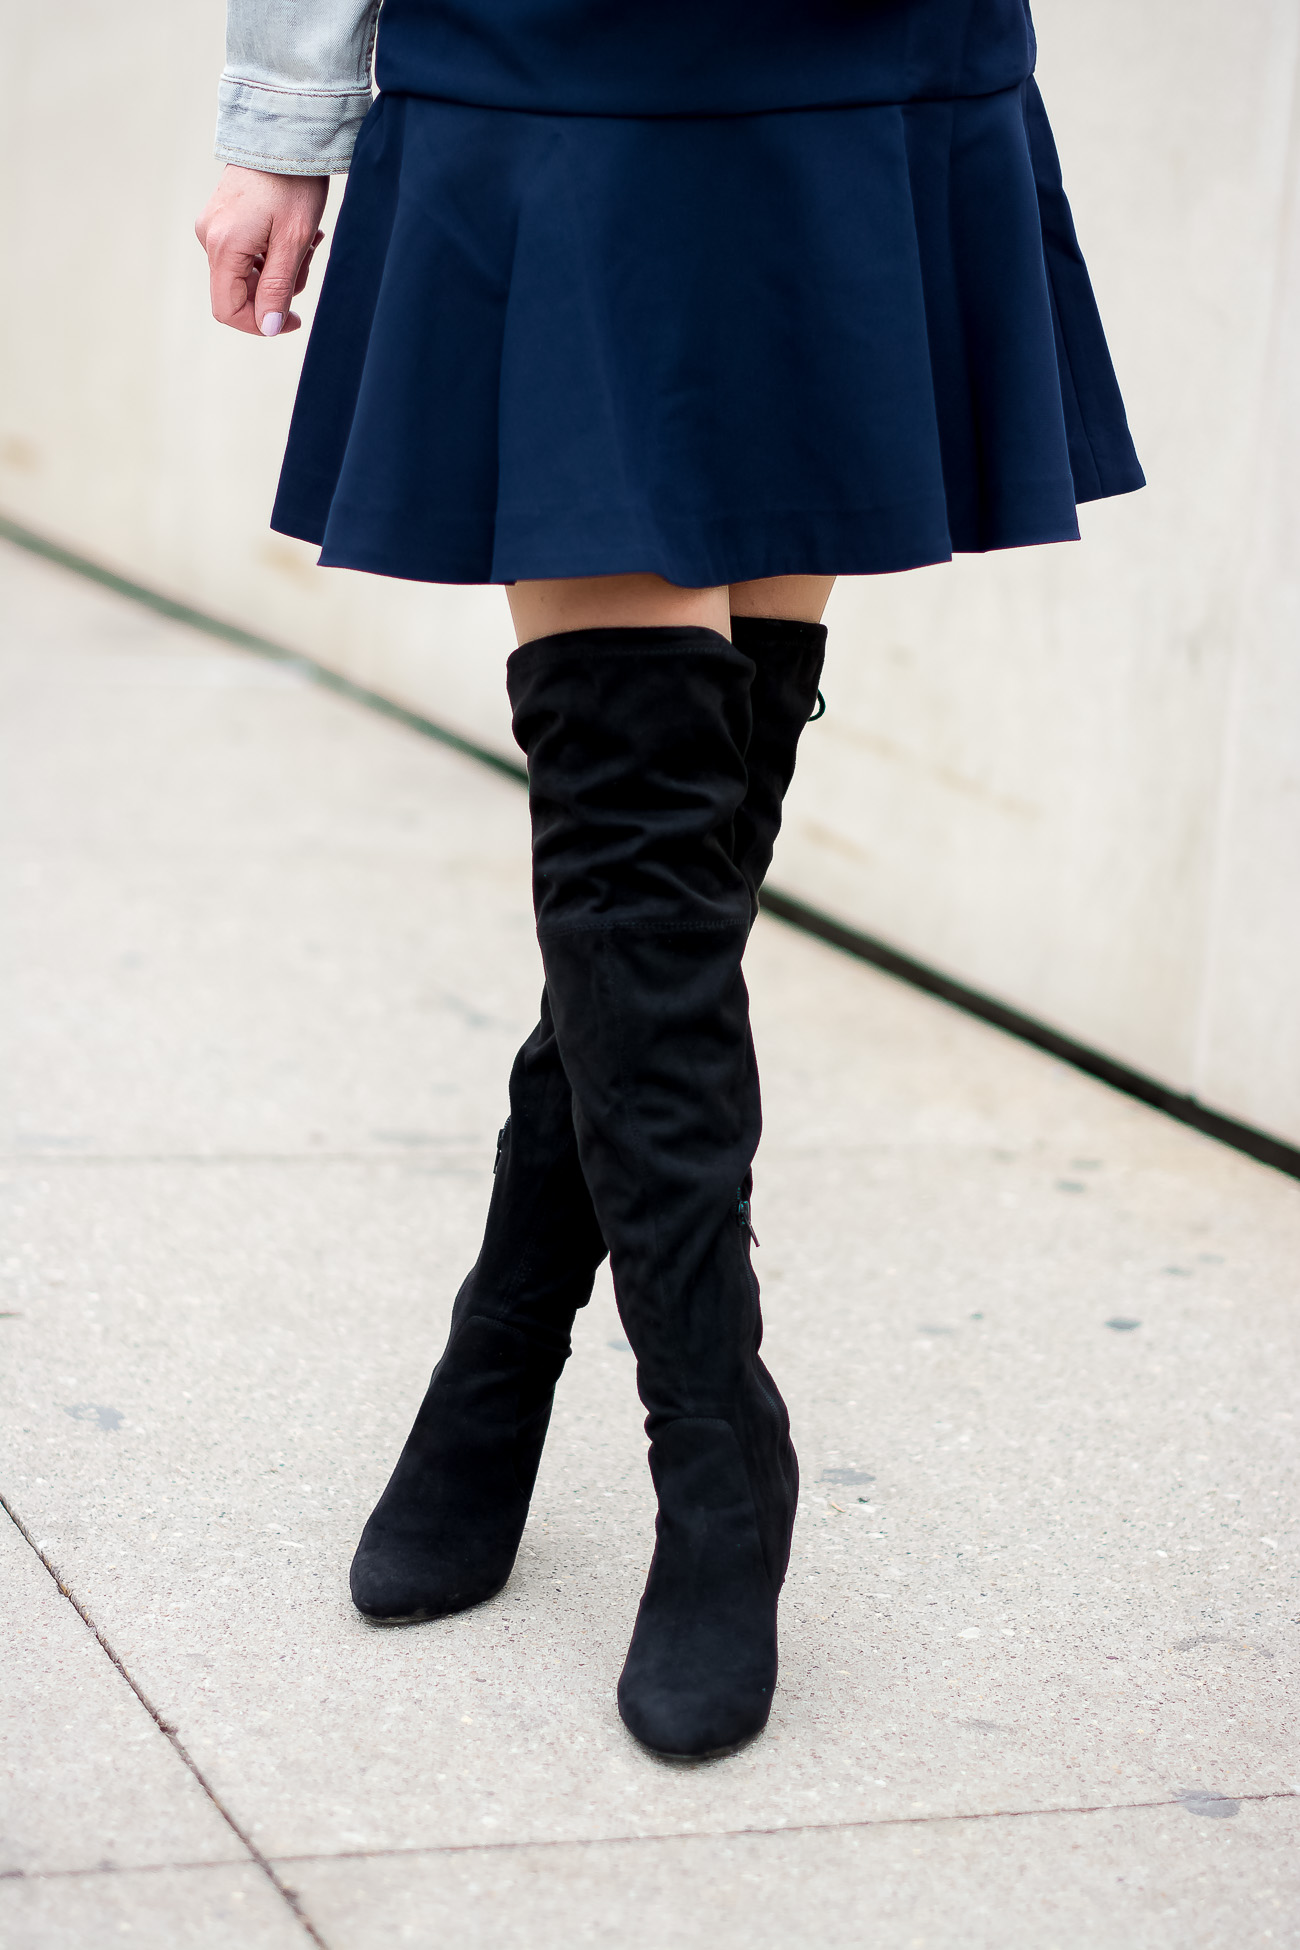 banana-republic-fit-and-flare-dress-steve-madden-over-the-knee-faux-suede-black-boots-vintage-meets-modern-outfit